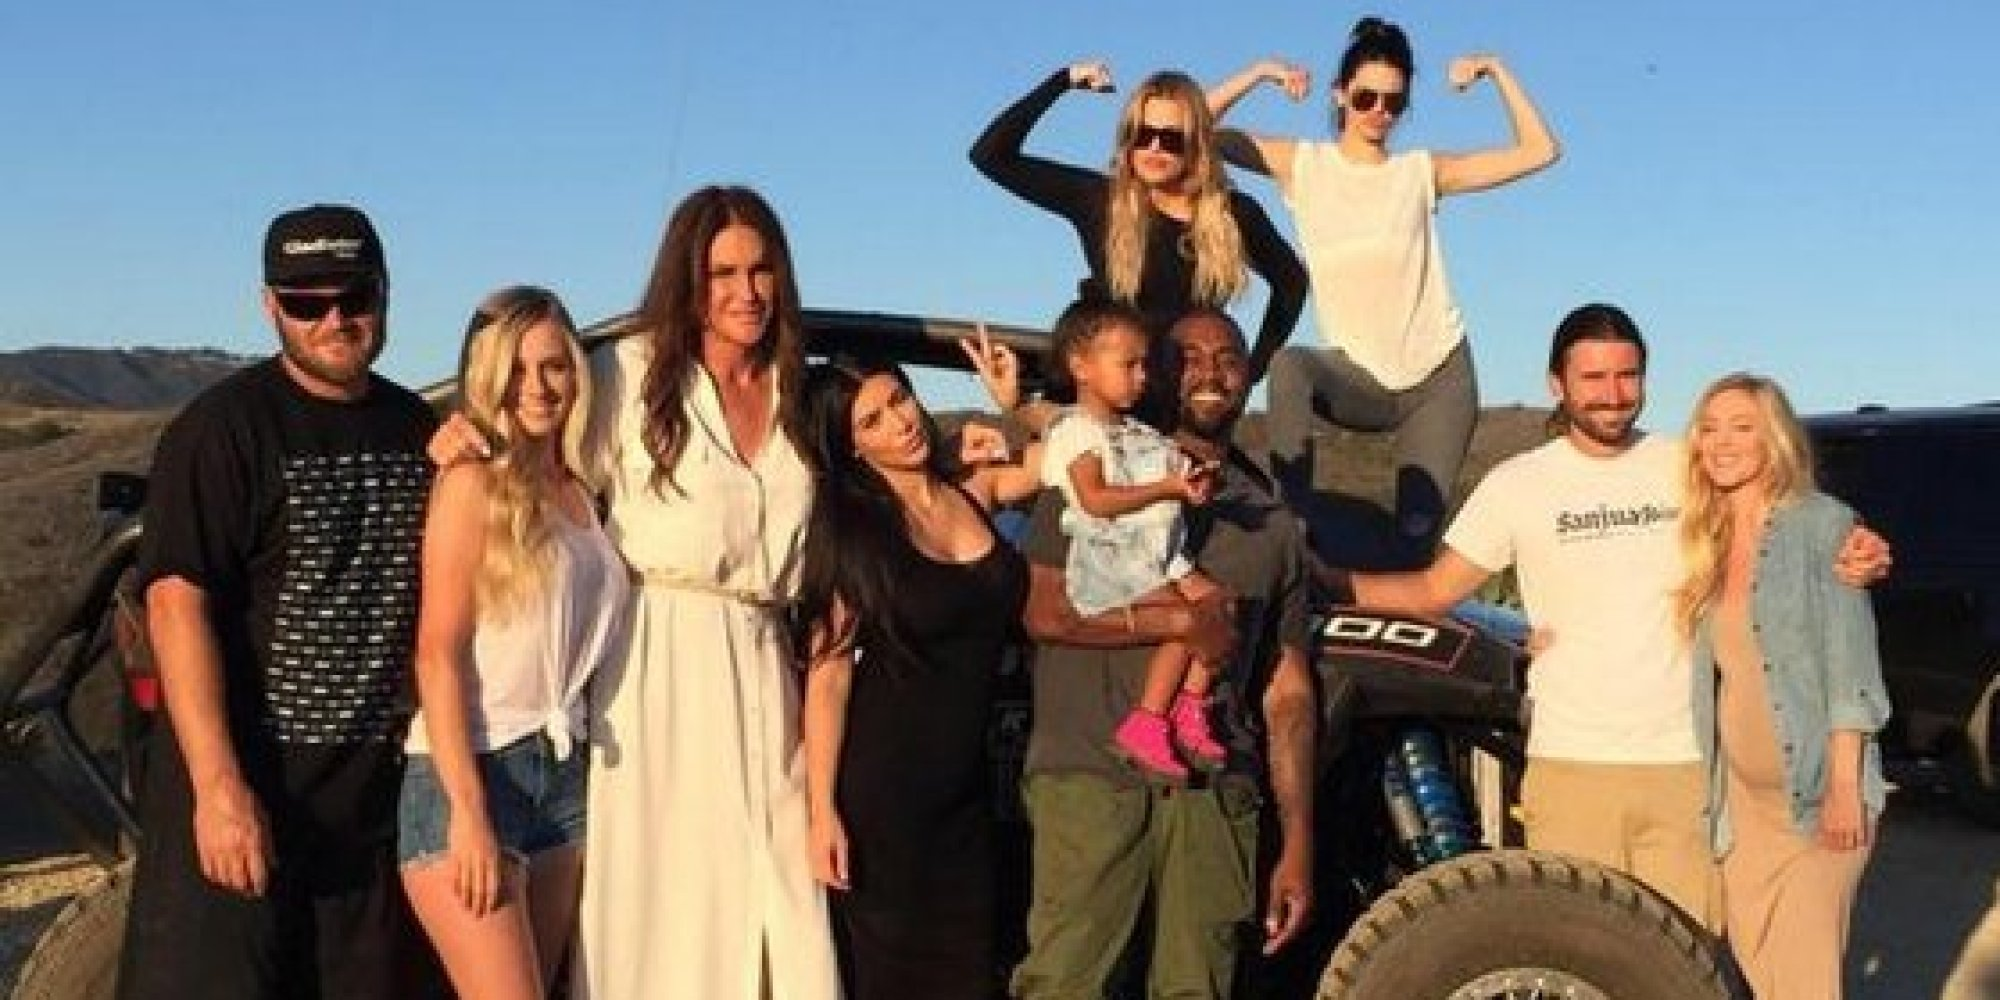 Caitlyn Jenner Shares Family Photo From Father's Day | HuffPost